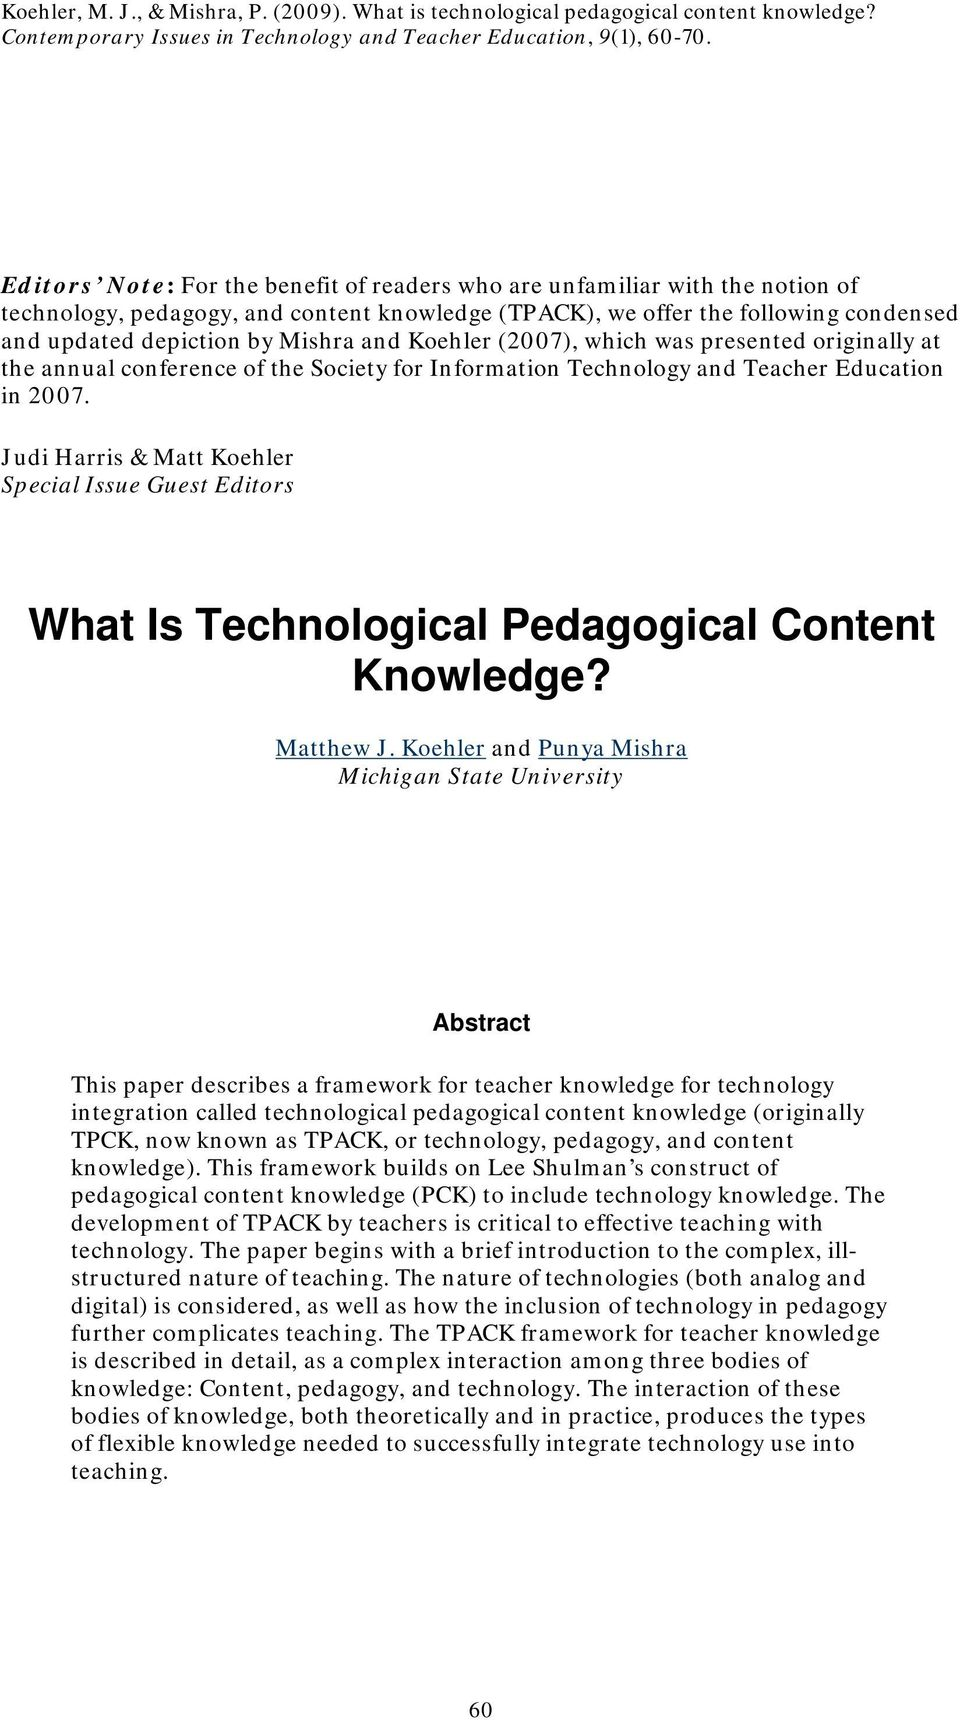 and Koehler (2007), which was presented originally at the annual conference of the Society for Information Technology and Teacher Education in 2007.